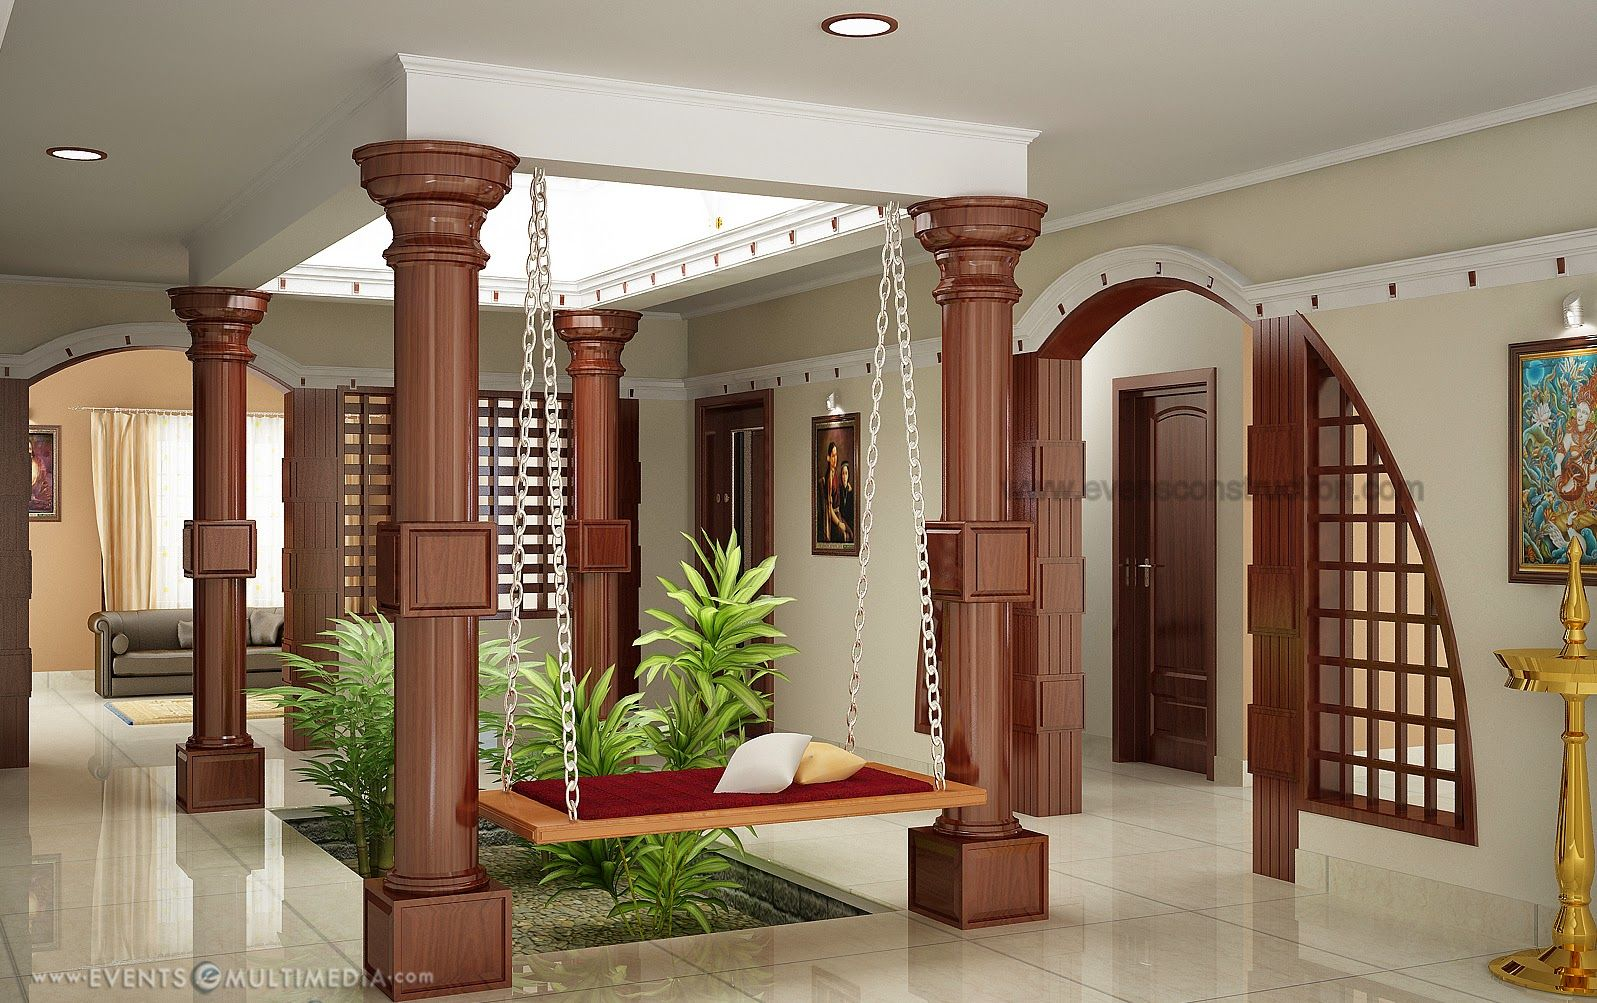 Kerala home with courtyard wooden pillers small courtyard open roof near to living area wooden partation between kitchen and living area